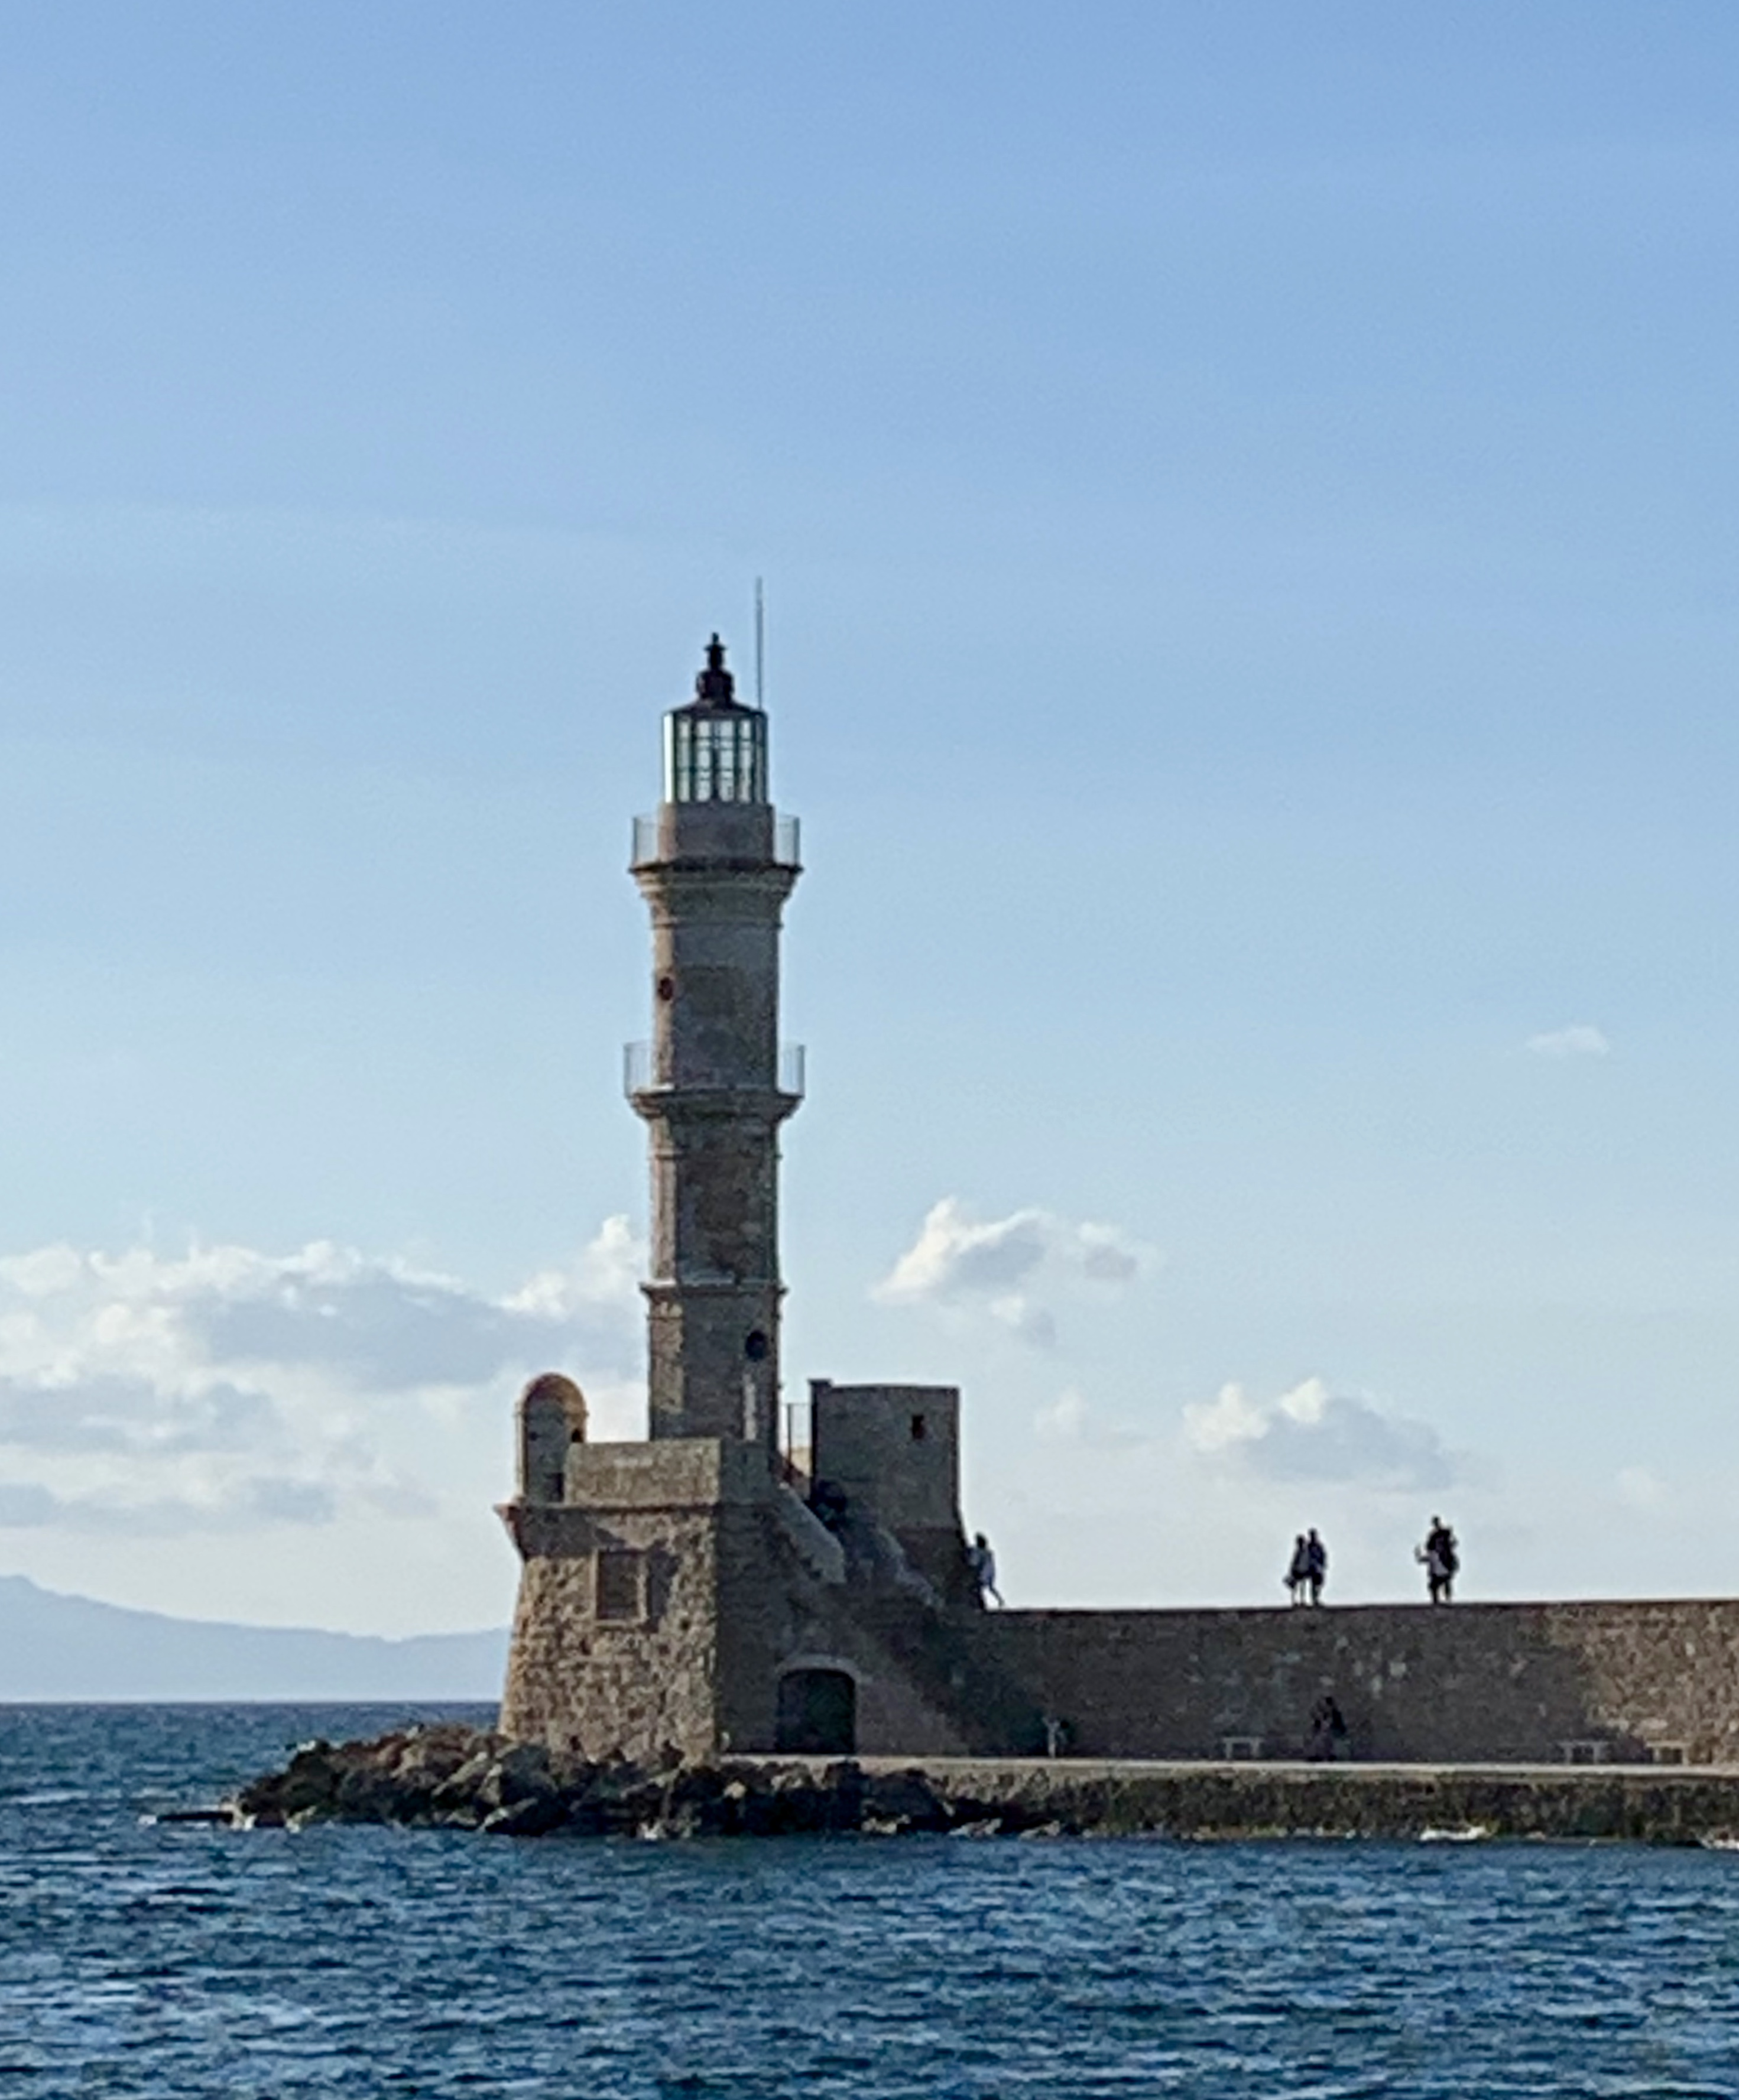 chania harbot